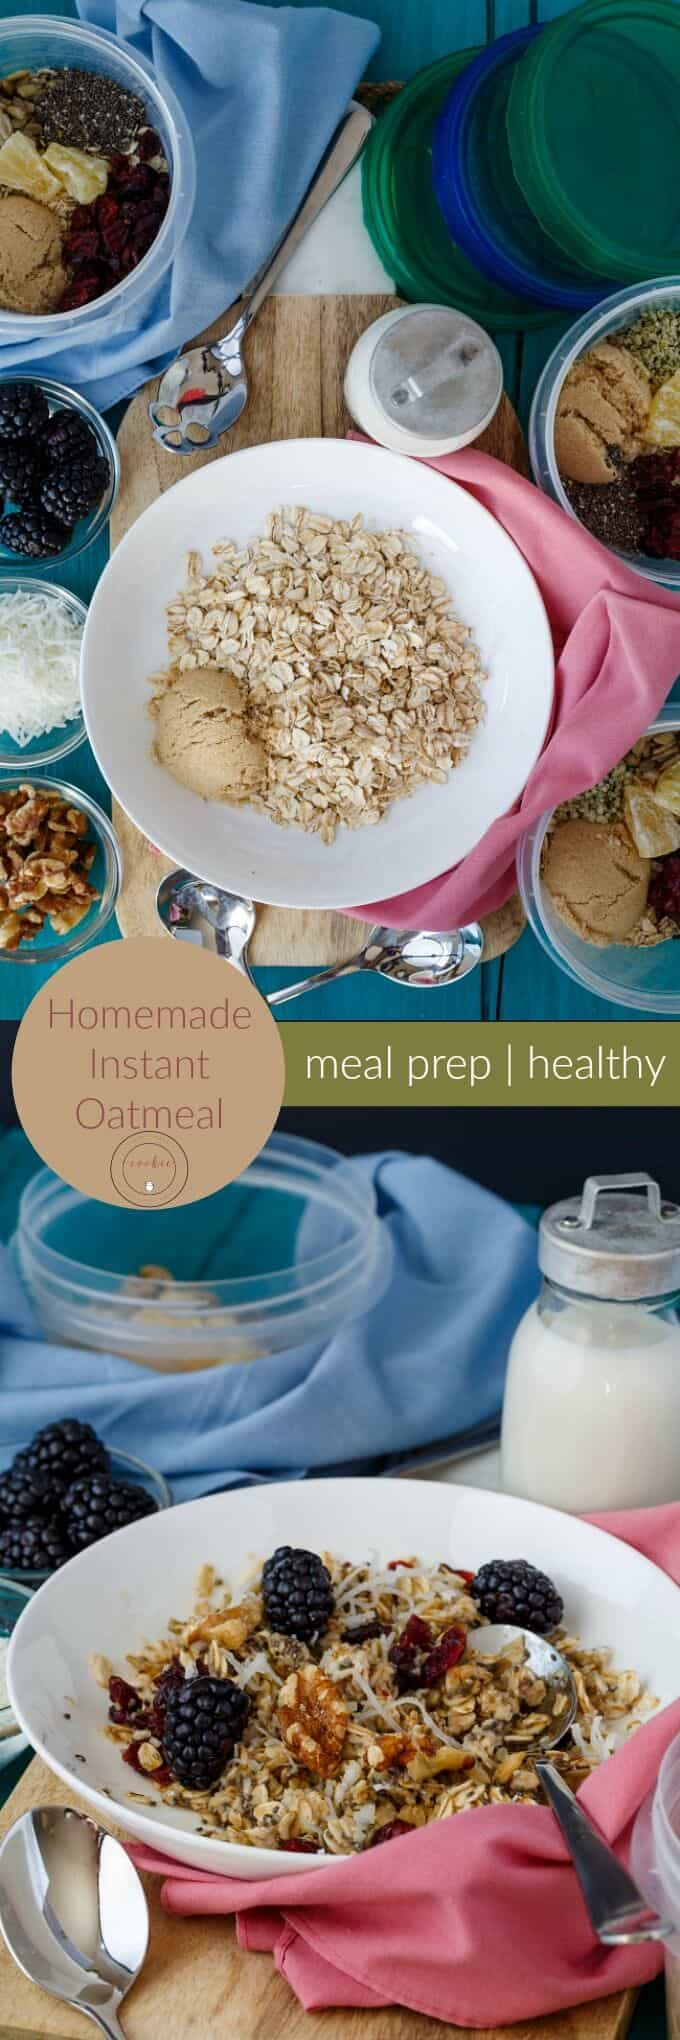 Homemade Instant Oatmeal (Meal Prep) - The Cookie Writer